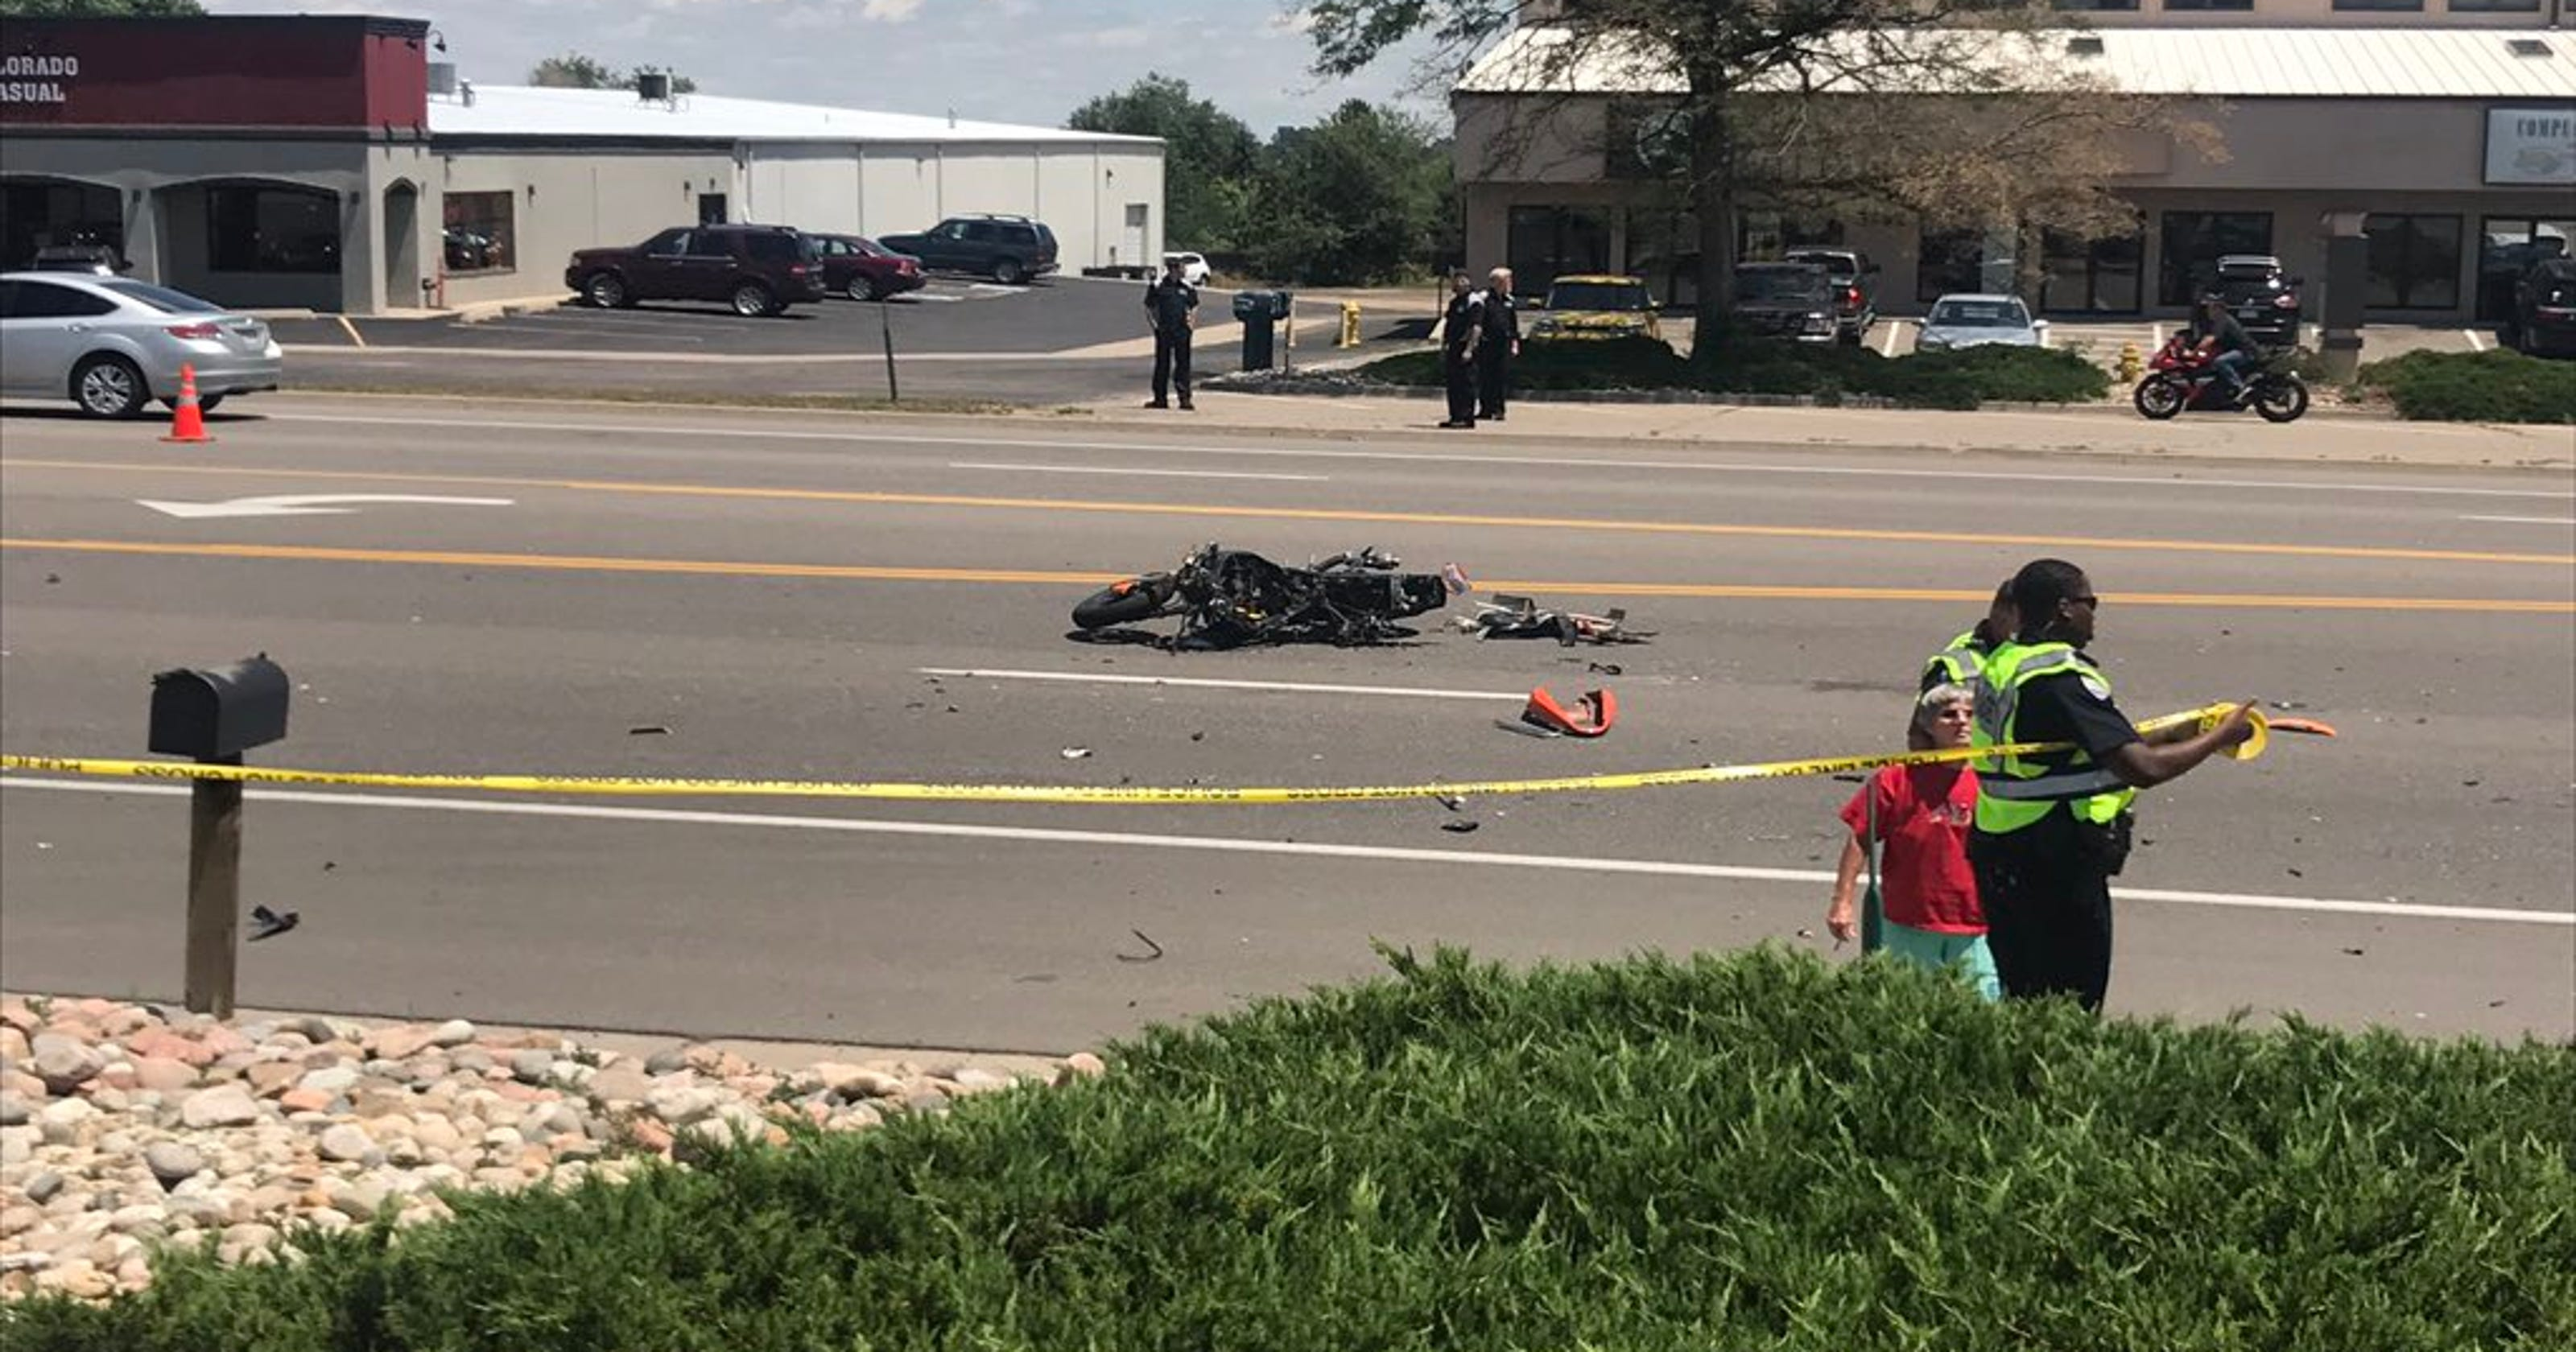 Police suspect drugs as factor in Fort Collins motorcycle crash